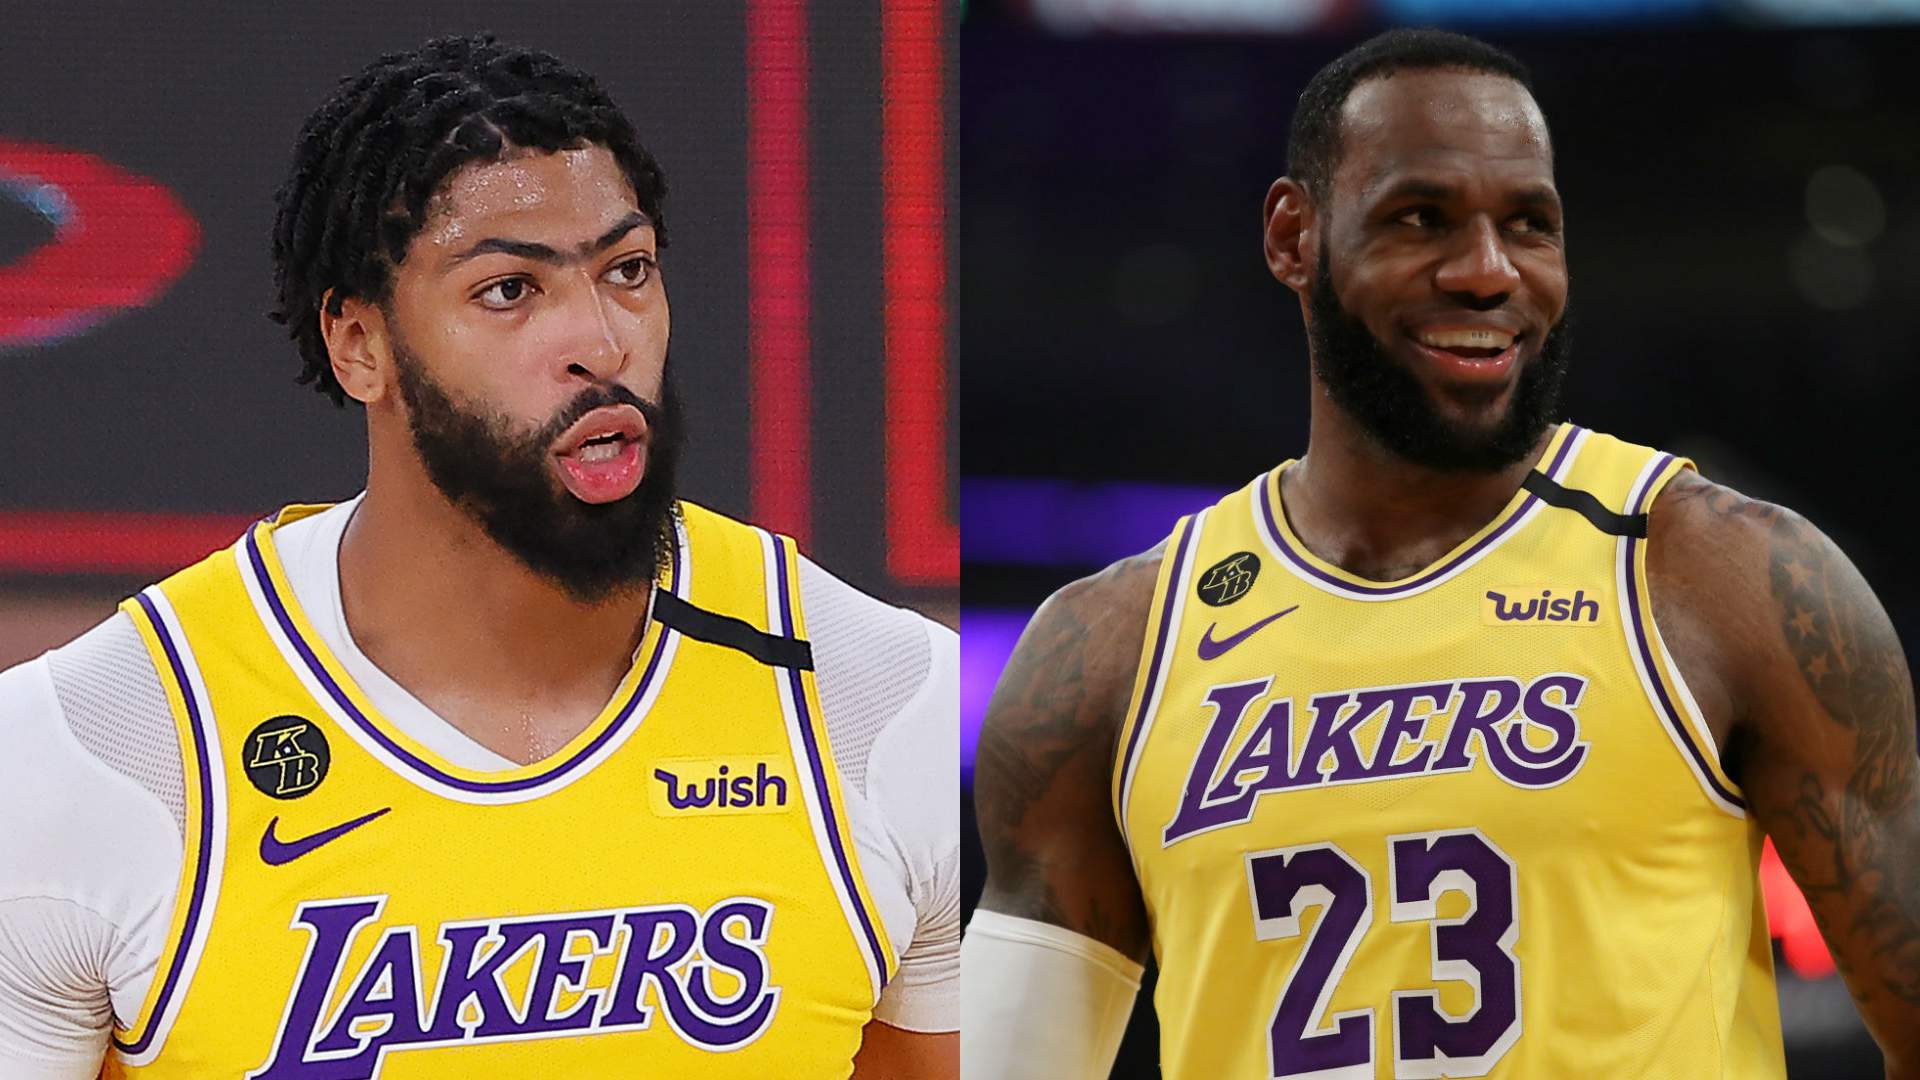 LeBron James explains why Lakers teammate Anthony Davis is a 'unicorn'